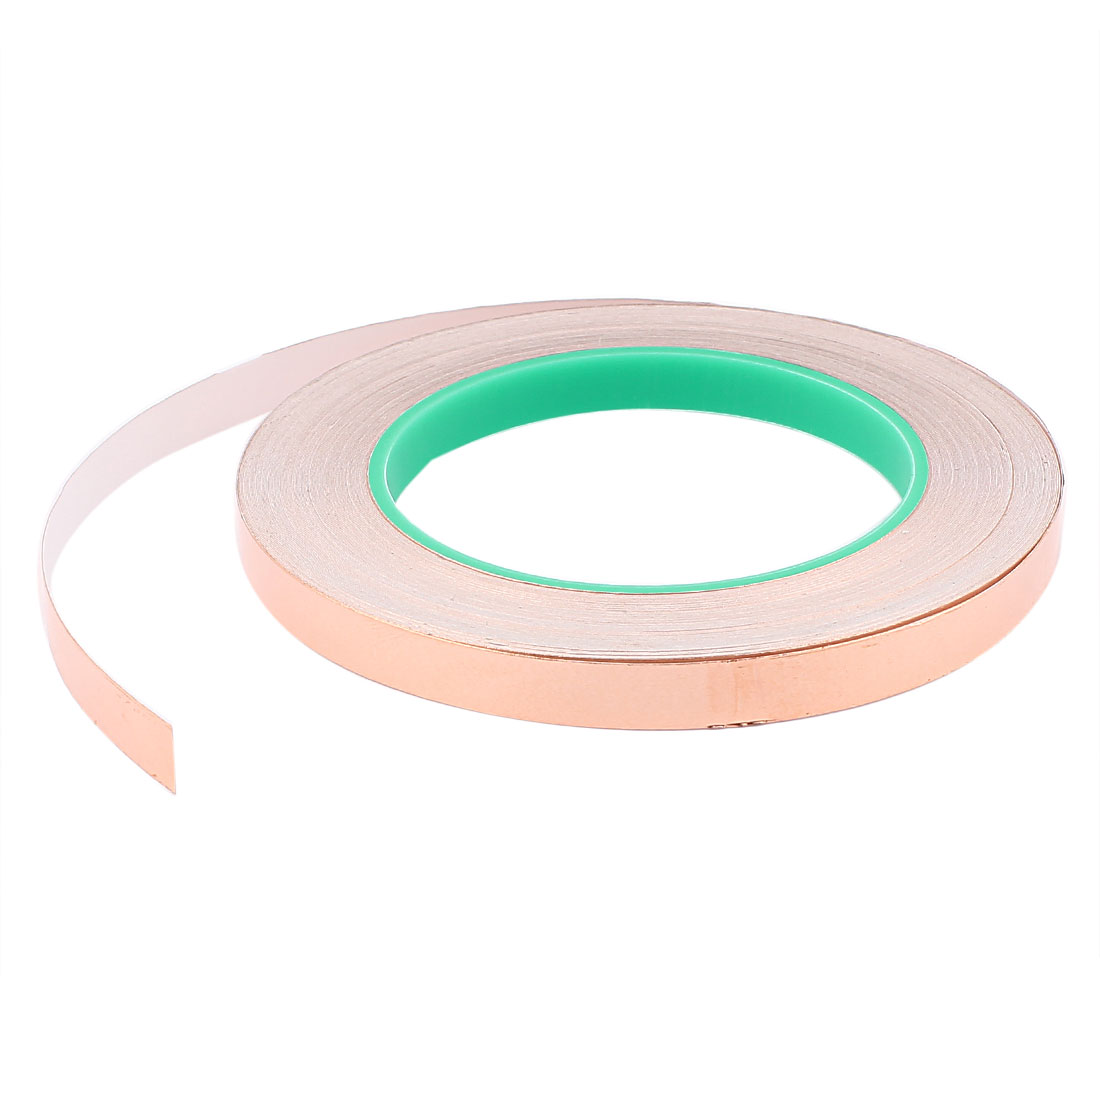 10mm x 30m Two Side Adhesive Copper Foil Tape for EMI Shielding